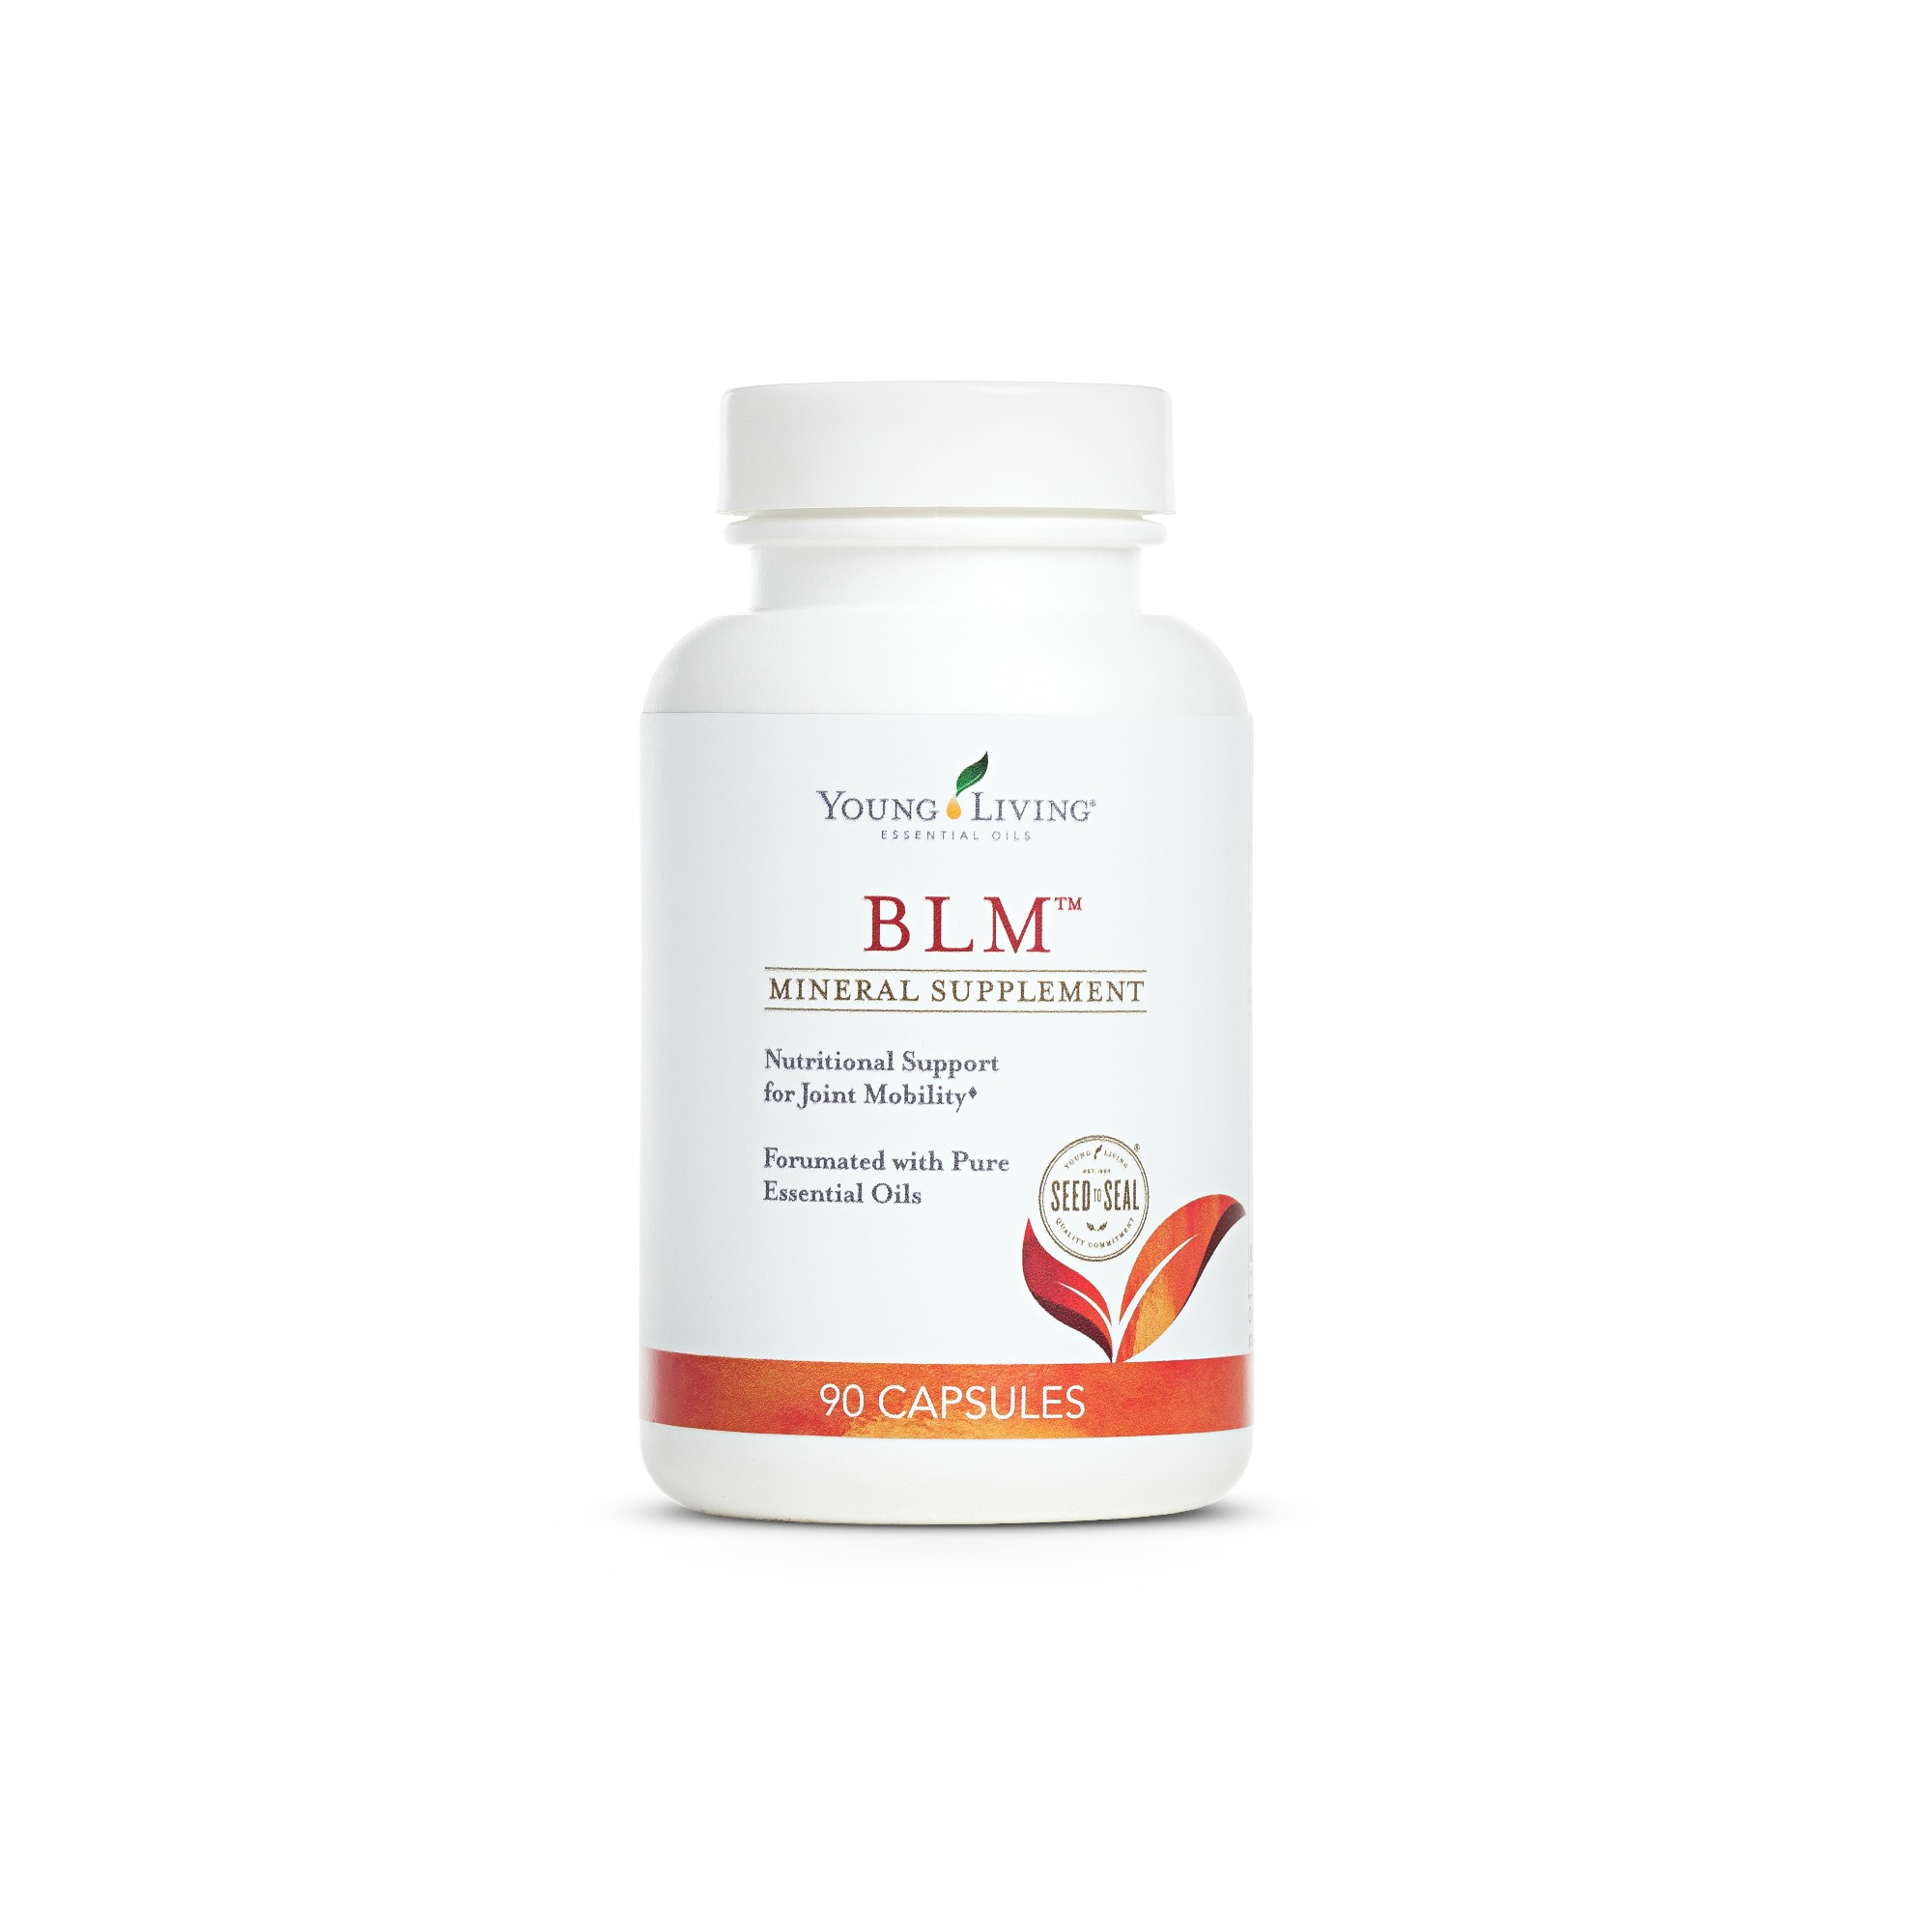 BLM    BLM supports normal bone and joint health. This formula combines powerful natural ingredients, such as type II collagen, MSM, glucosamine sulfate, and manganese citrate, enhanced with therapeutic-grade essential oils. These ingredients have been shown to support healthy cell function and encourage joint health and fluid movement.   Click here   to learn more about this product.